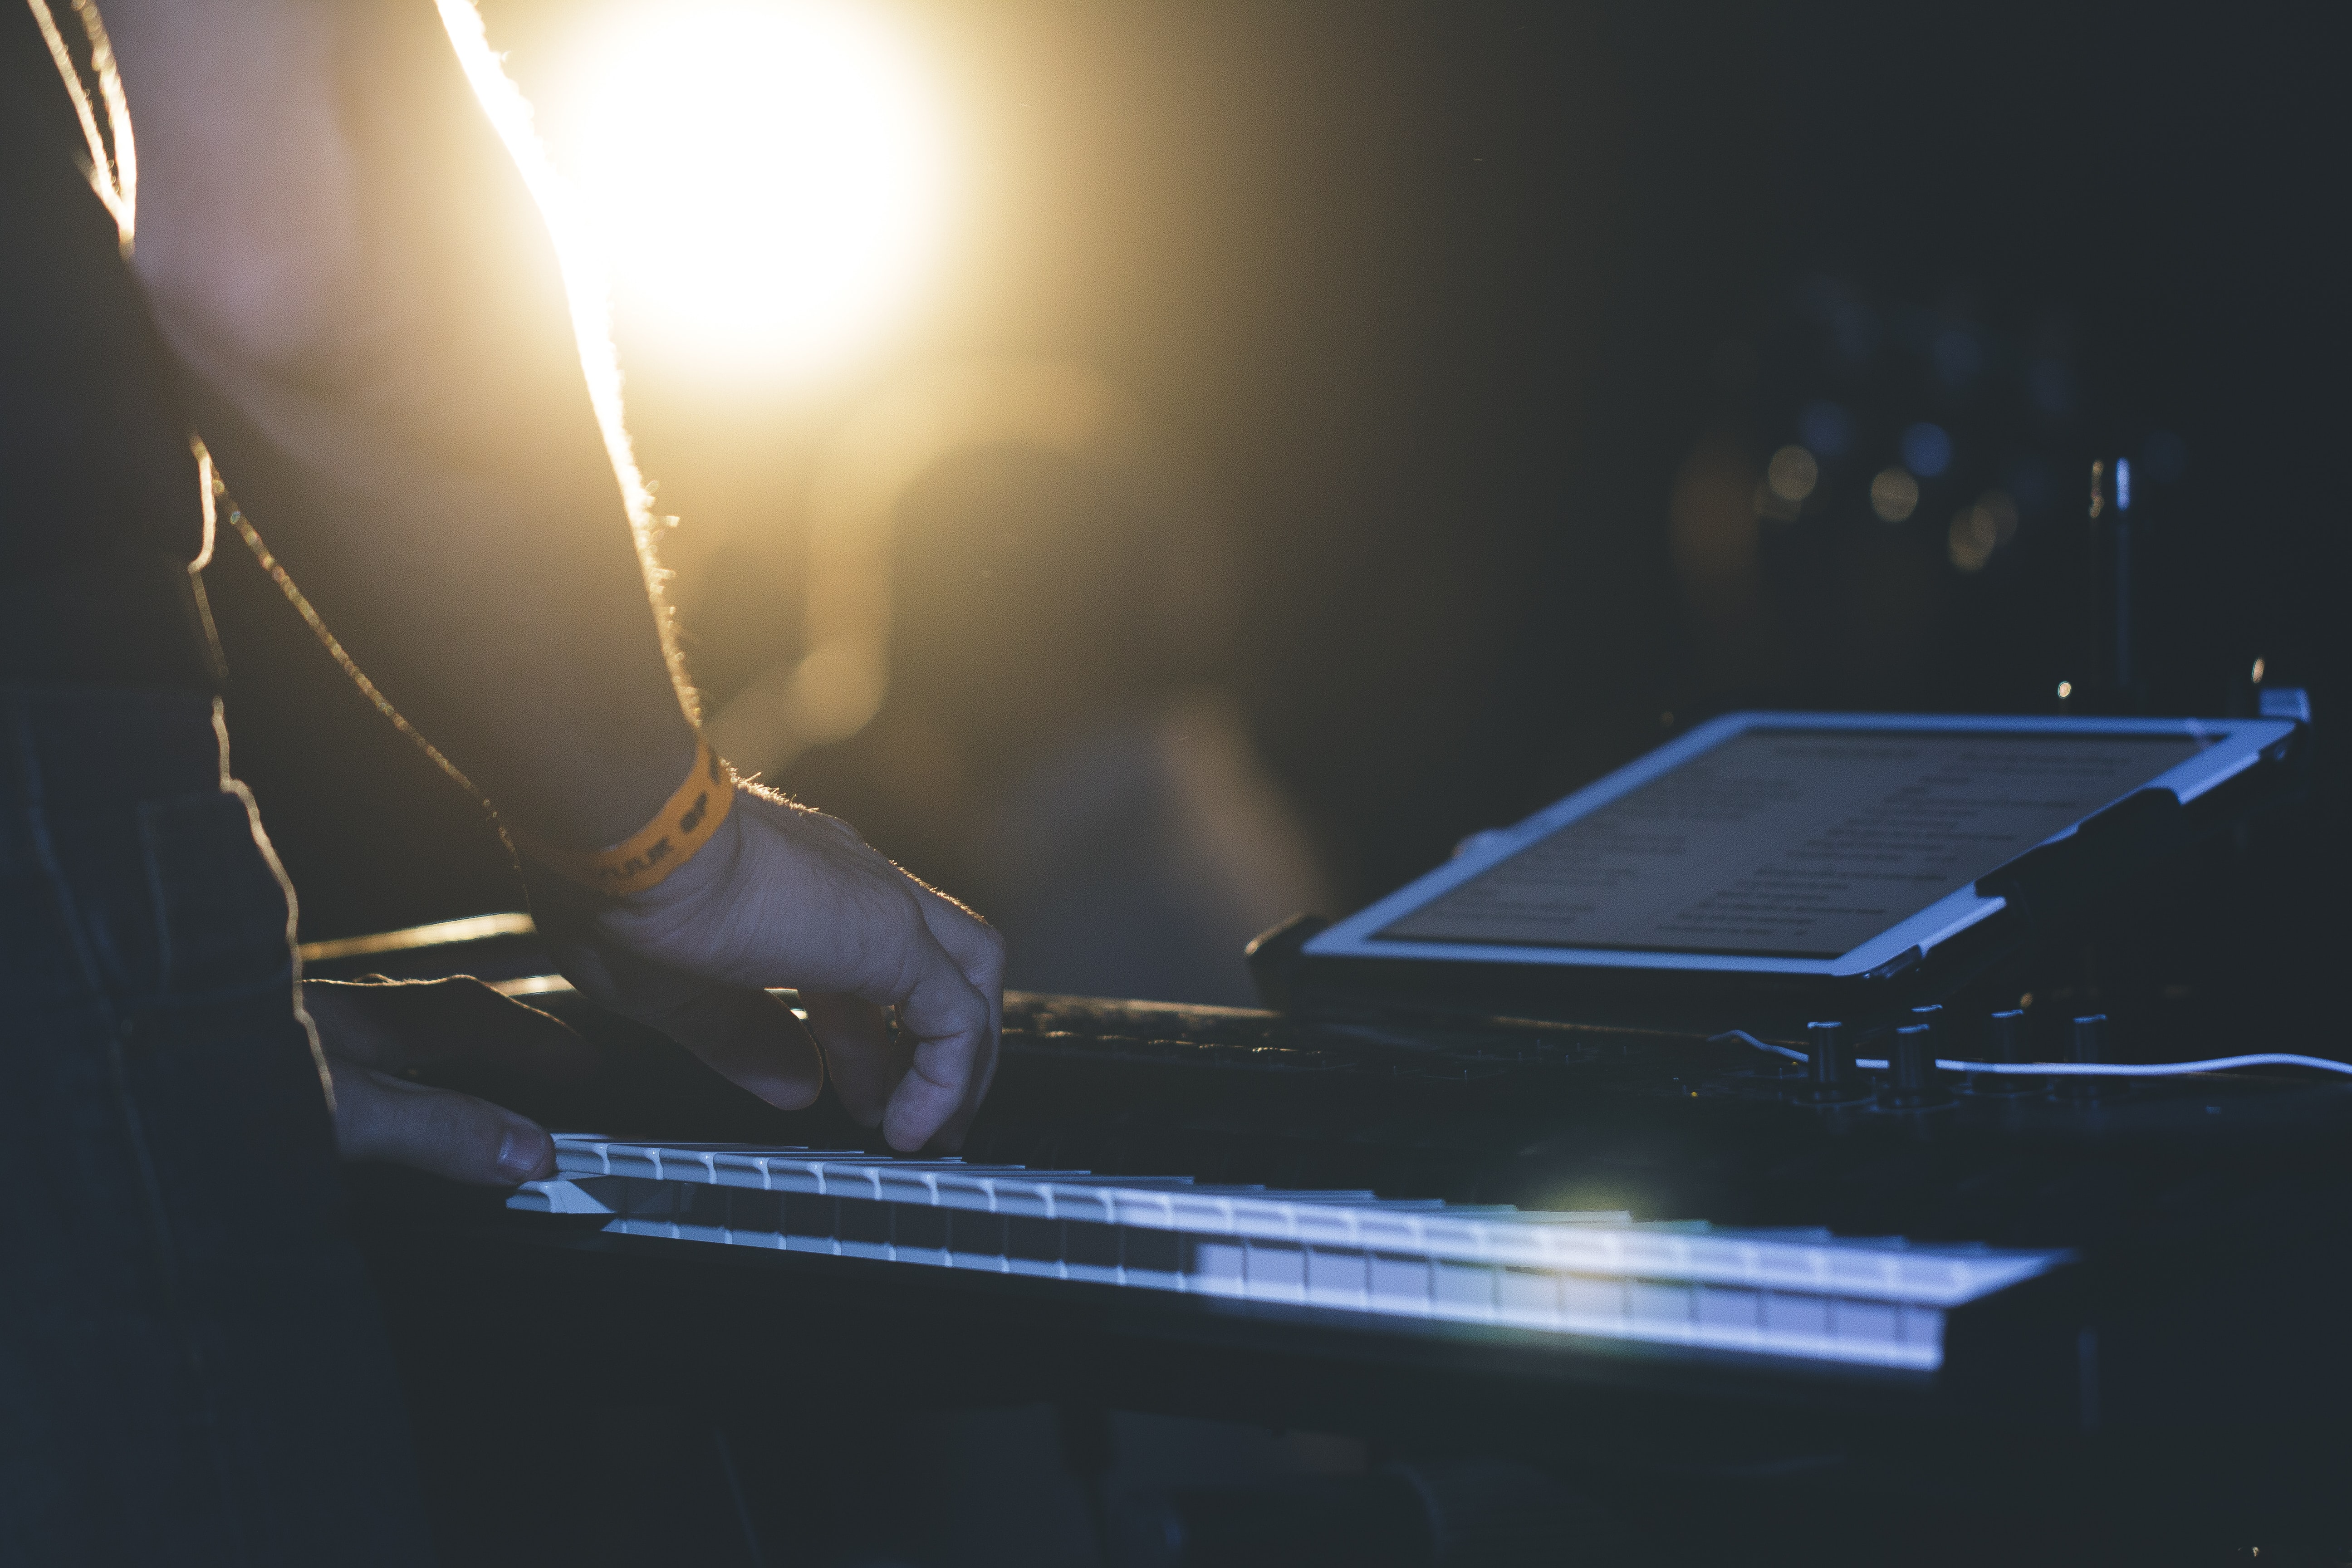 A close-up of a man playing the keyboard with a tablet in front of him